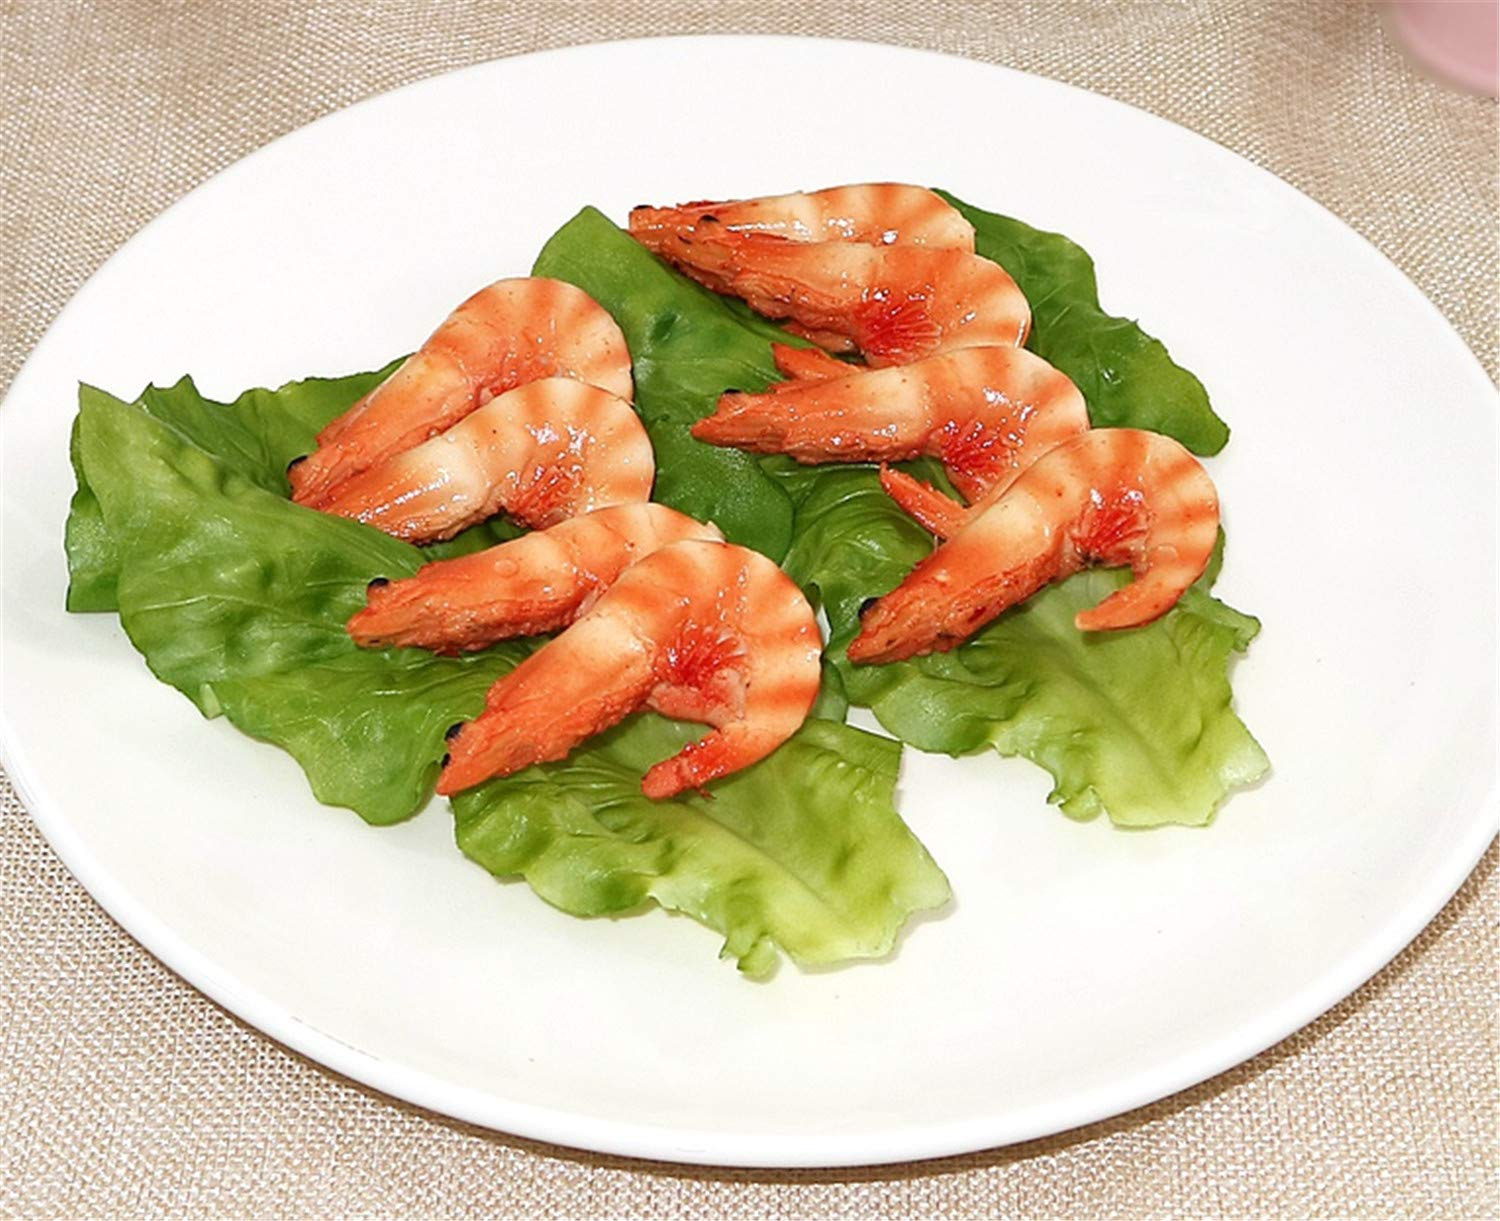 Skyseen-10Pcs-Artificial-Vegetable-Lettuce-Leaves-Simulation-Fake-Lifelike-for-Home-Party-Kitchen-Festival-Decoration